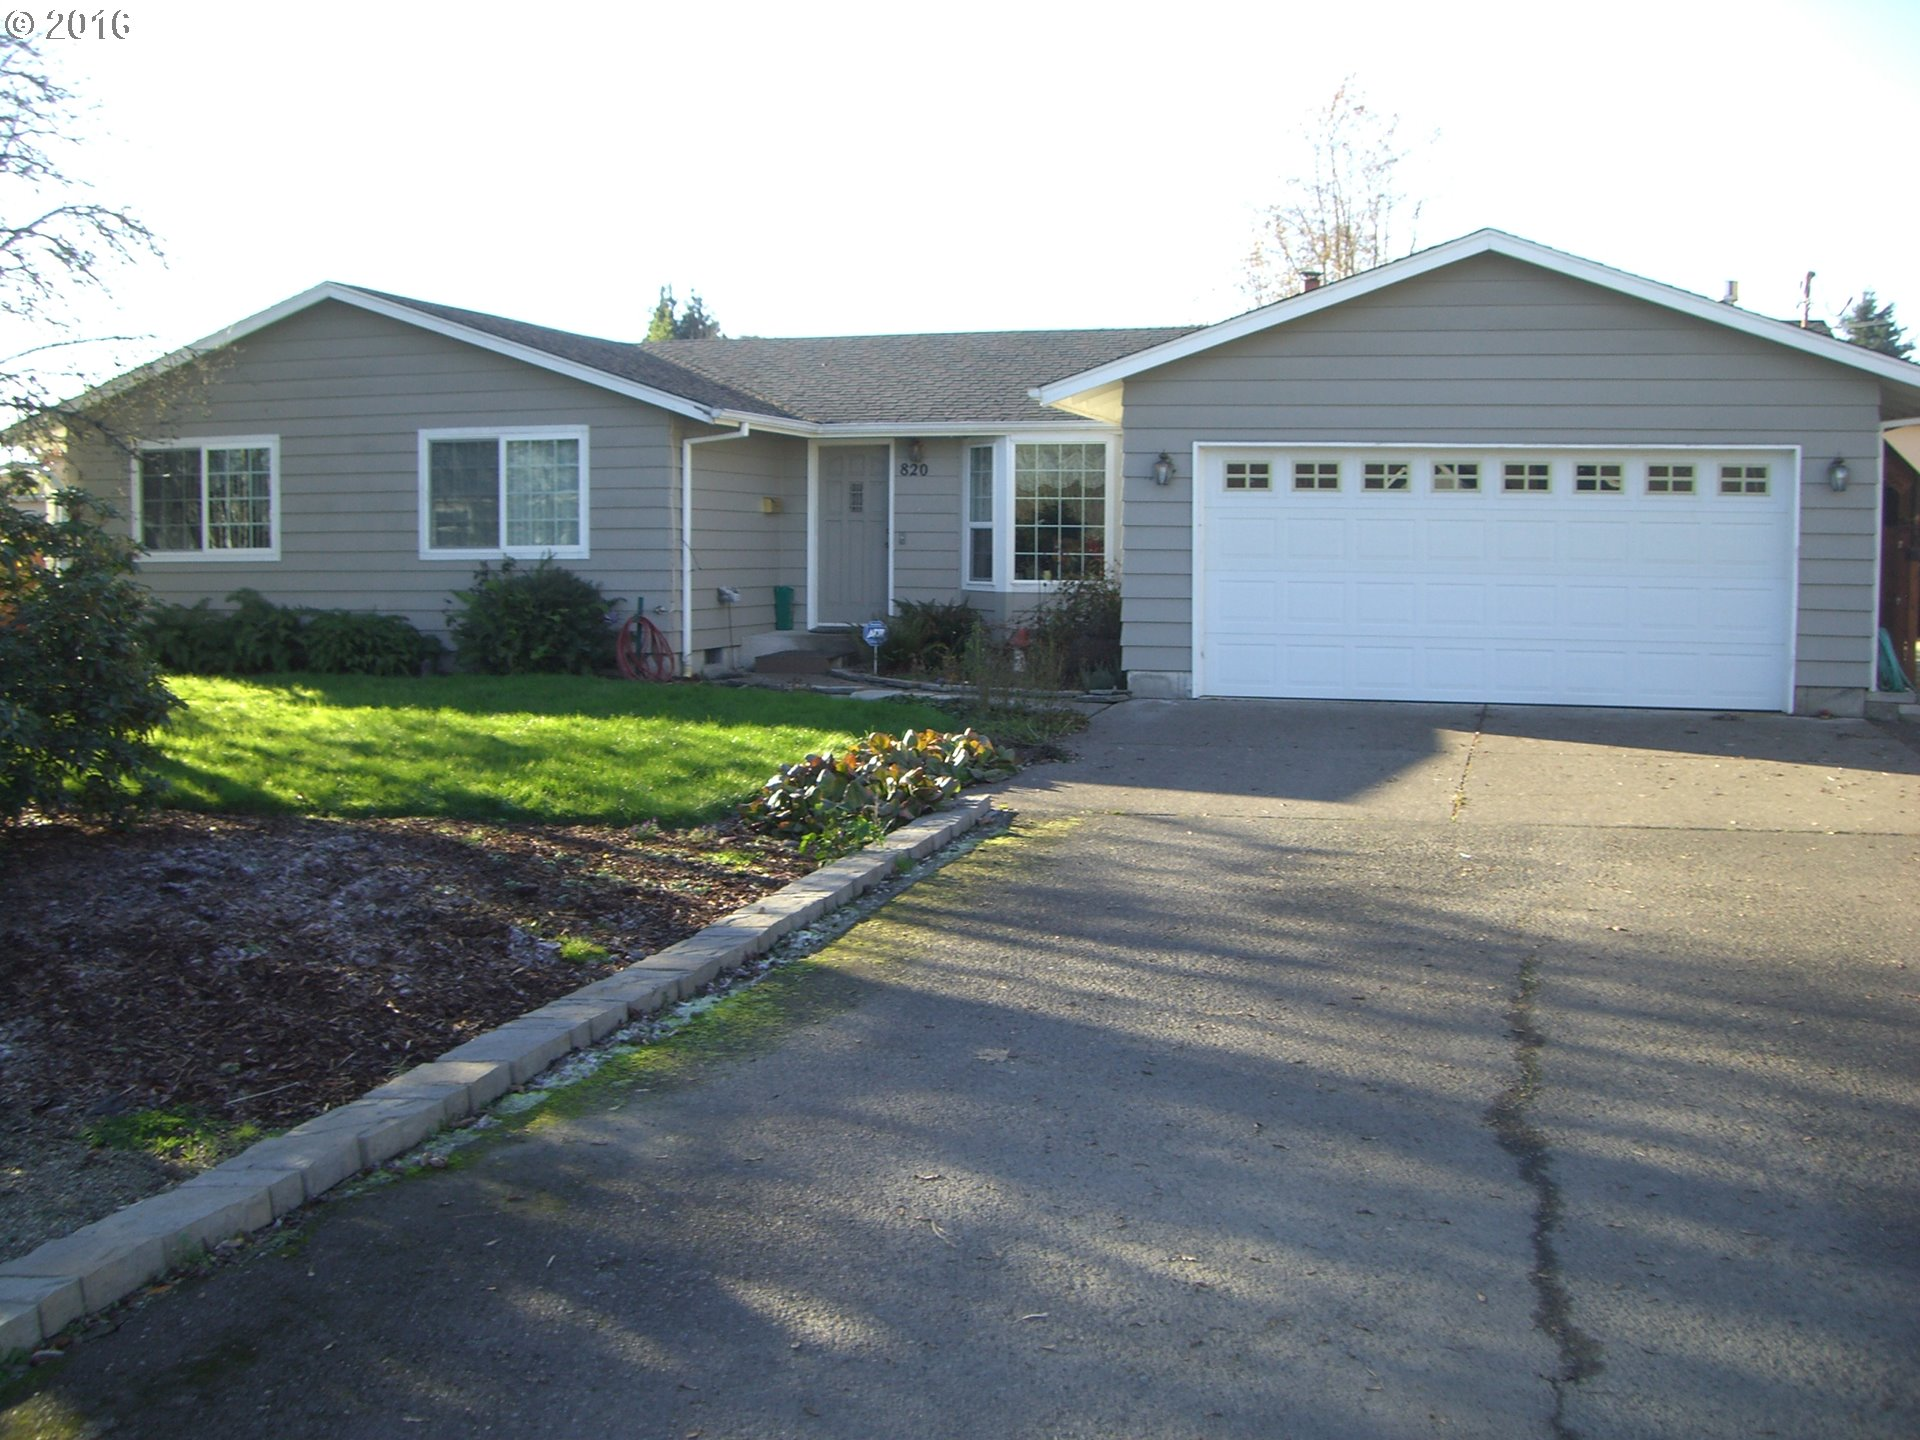 820 S 43rd St, Springfield, OR